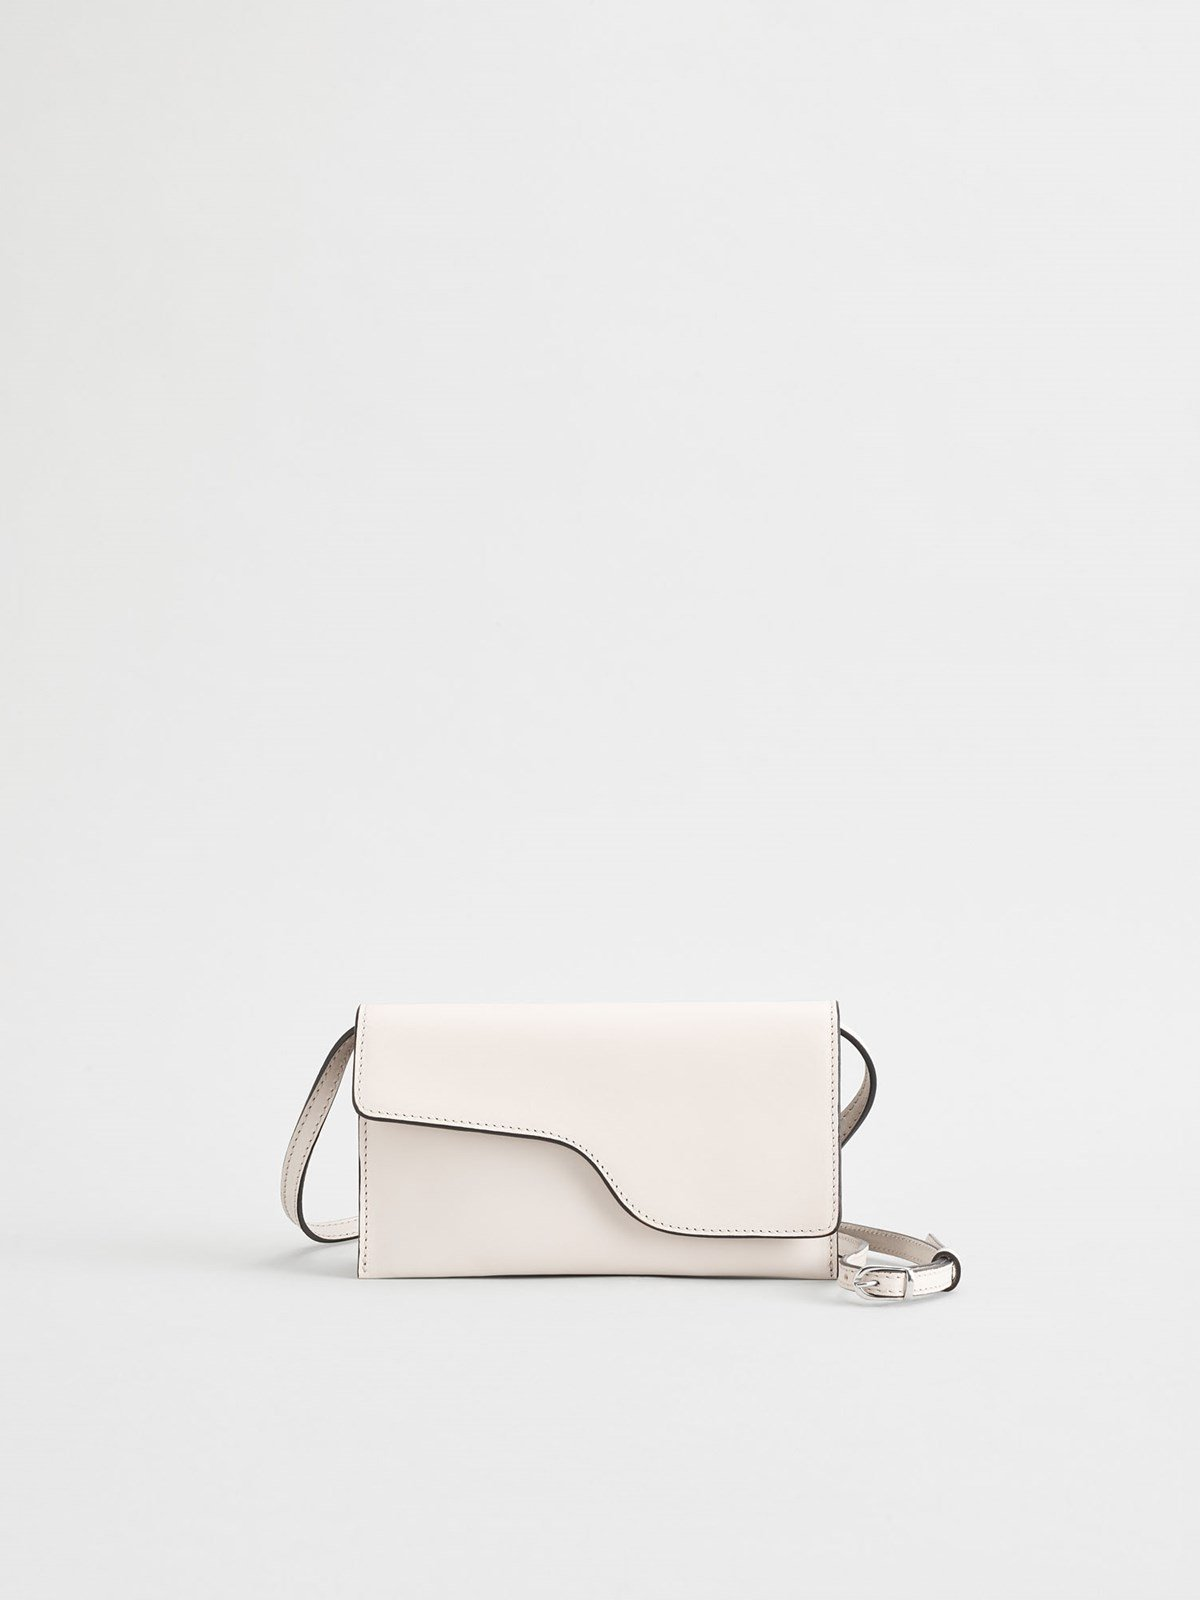 Ulignano Ice White Baguette bag